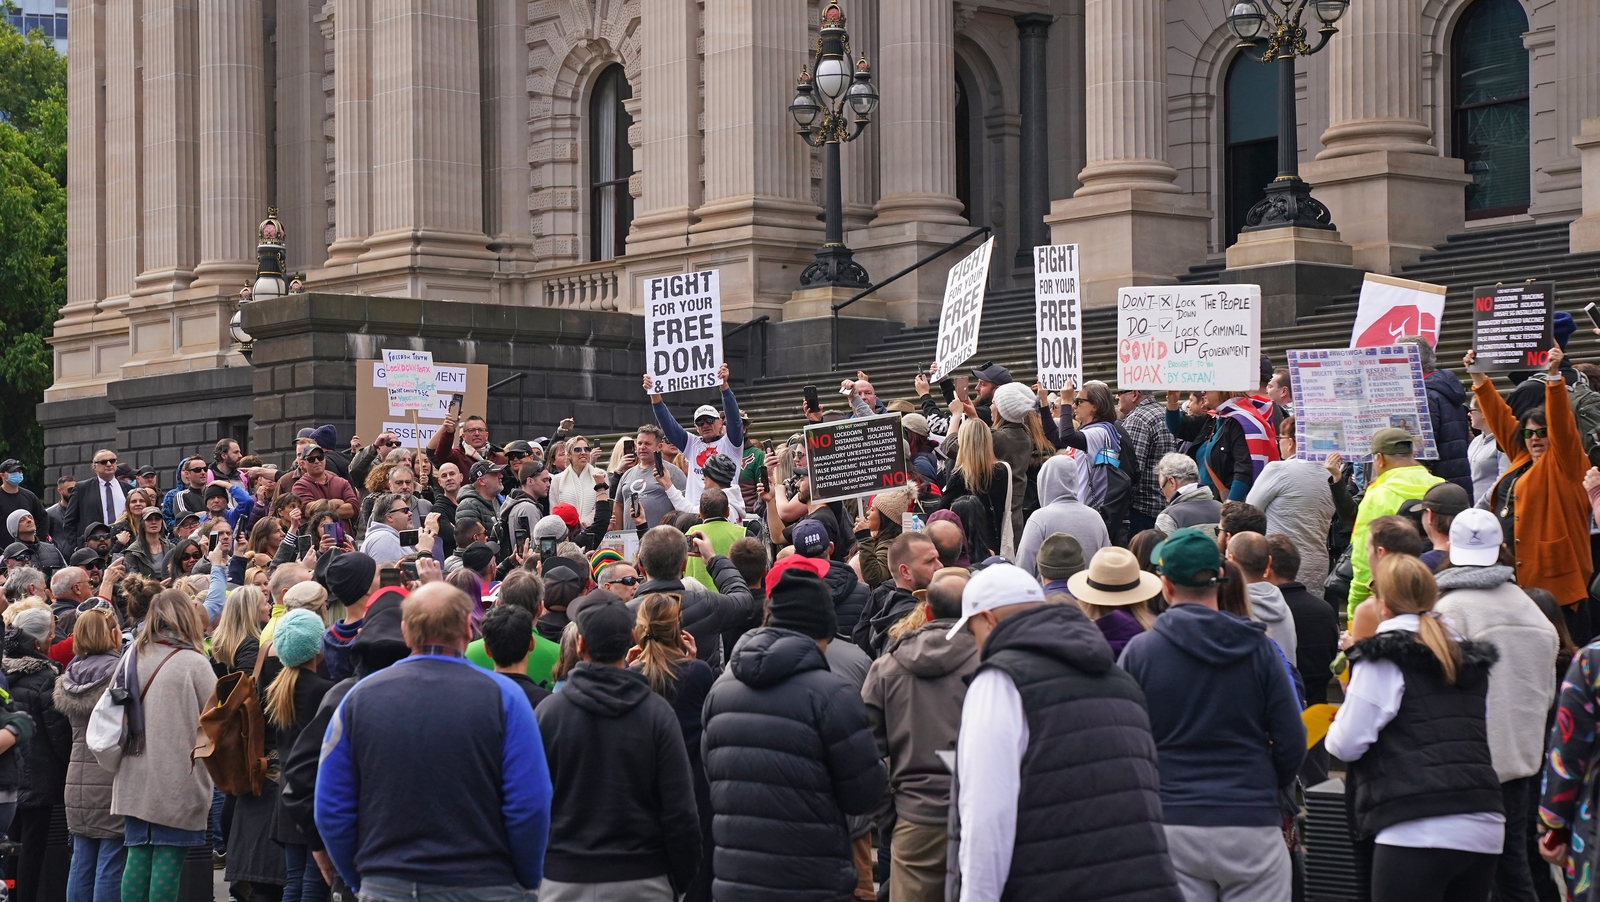 10 arrested at anti-lockdown protest in Melbourne